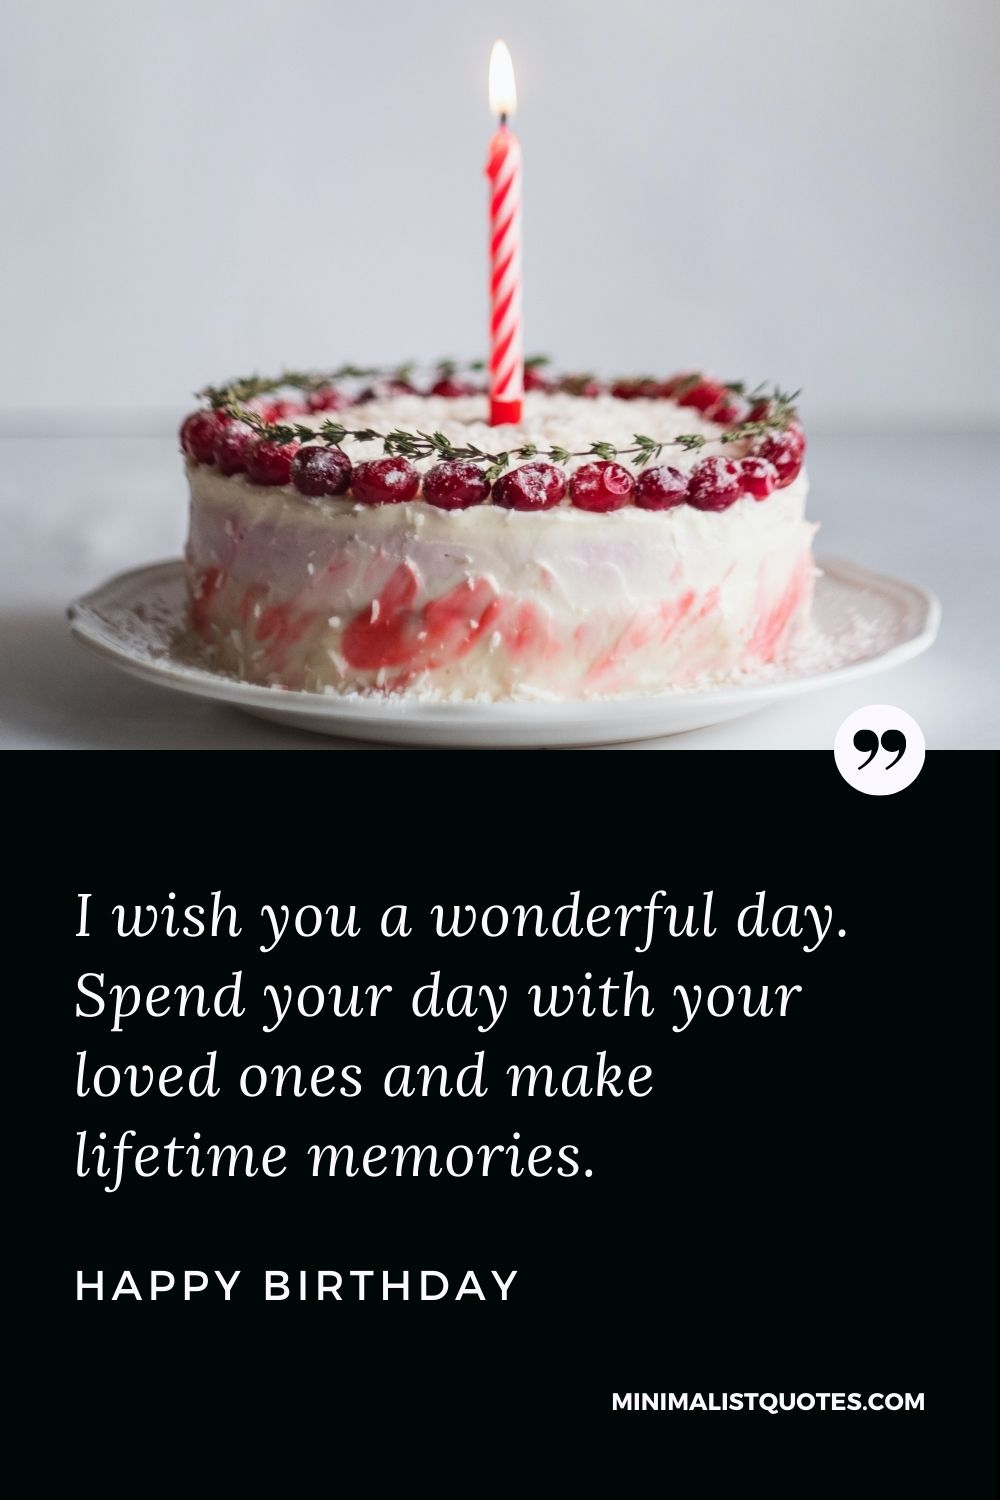 Happy Birthday Wishes - I wish you a wonderful day. Spend your day with your loved ones and make lifetime memories.